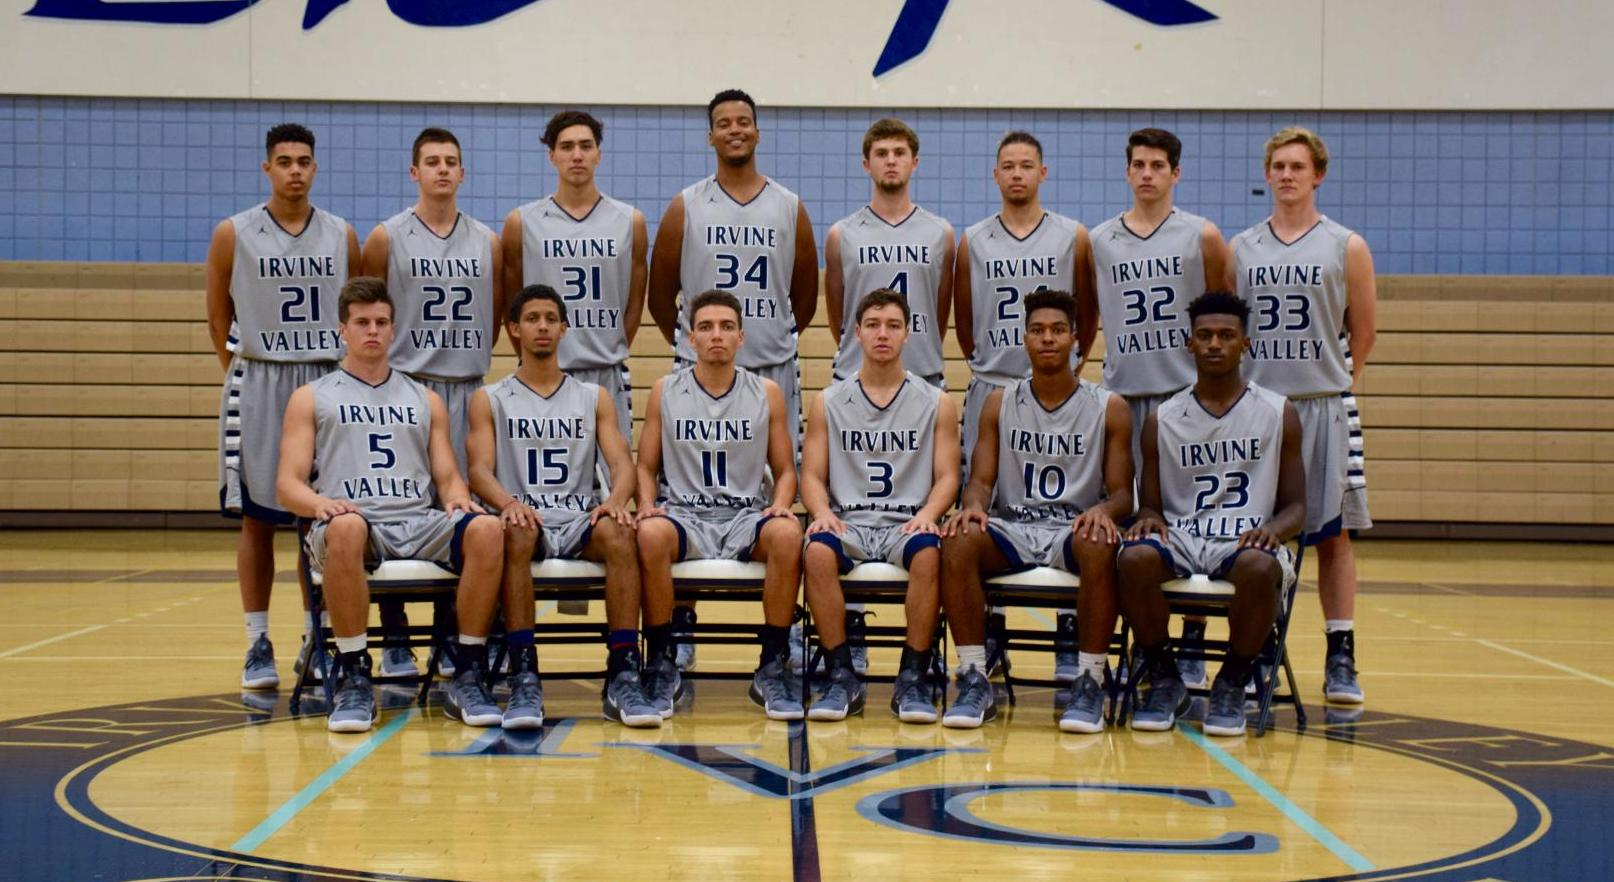 Men's basketball team ranked No. 19 in So. Cal. to start season